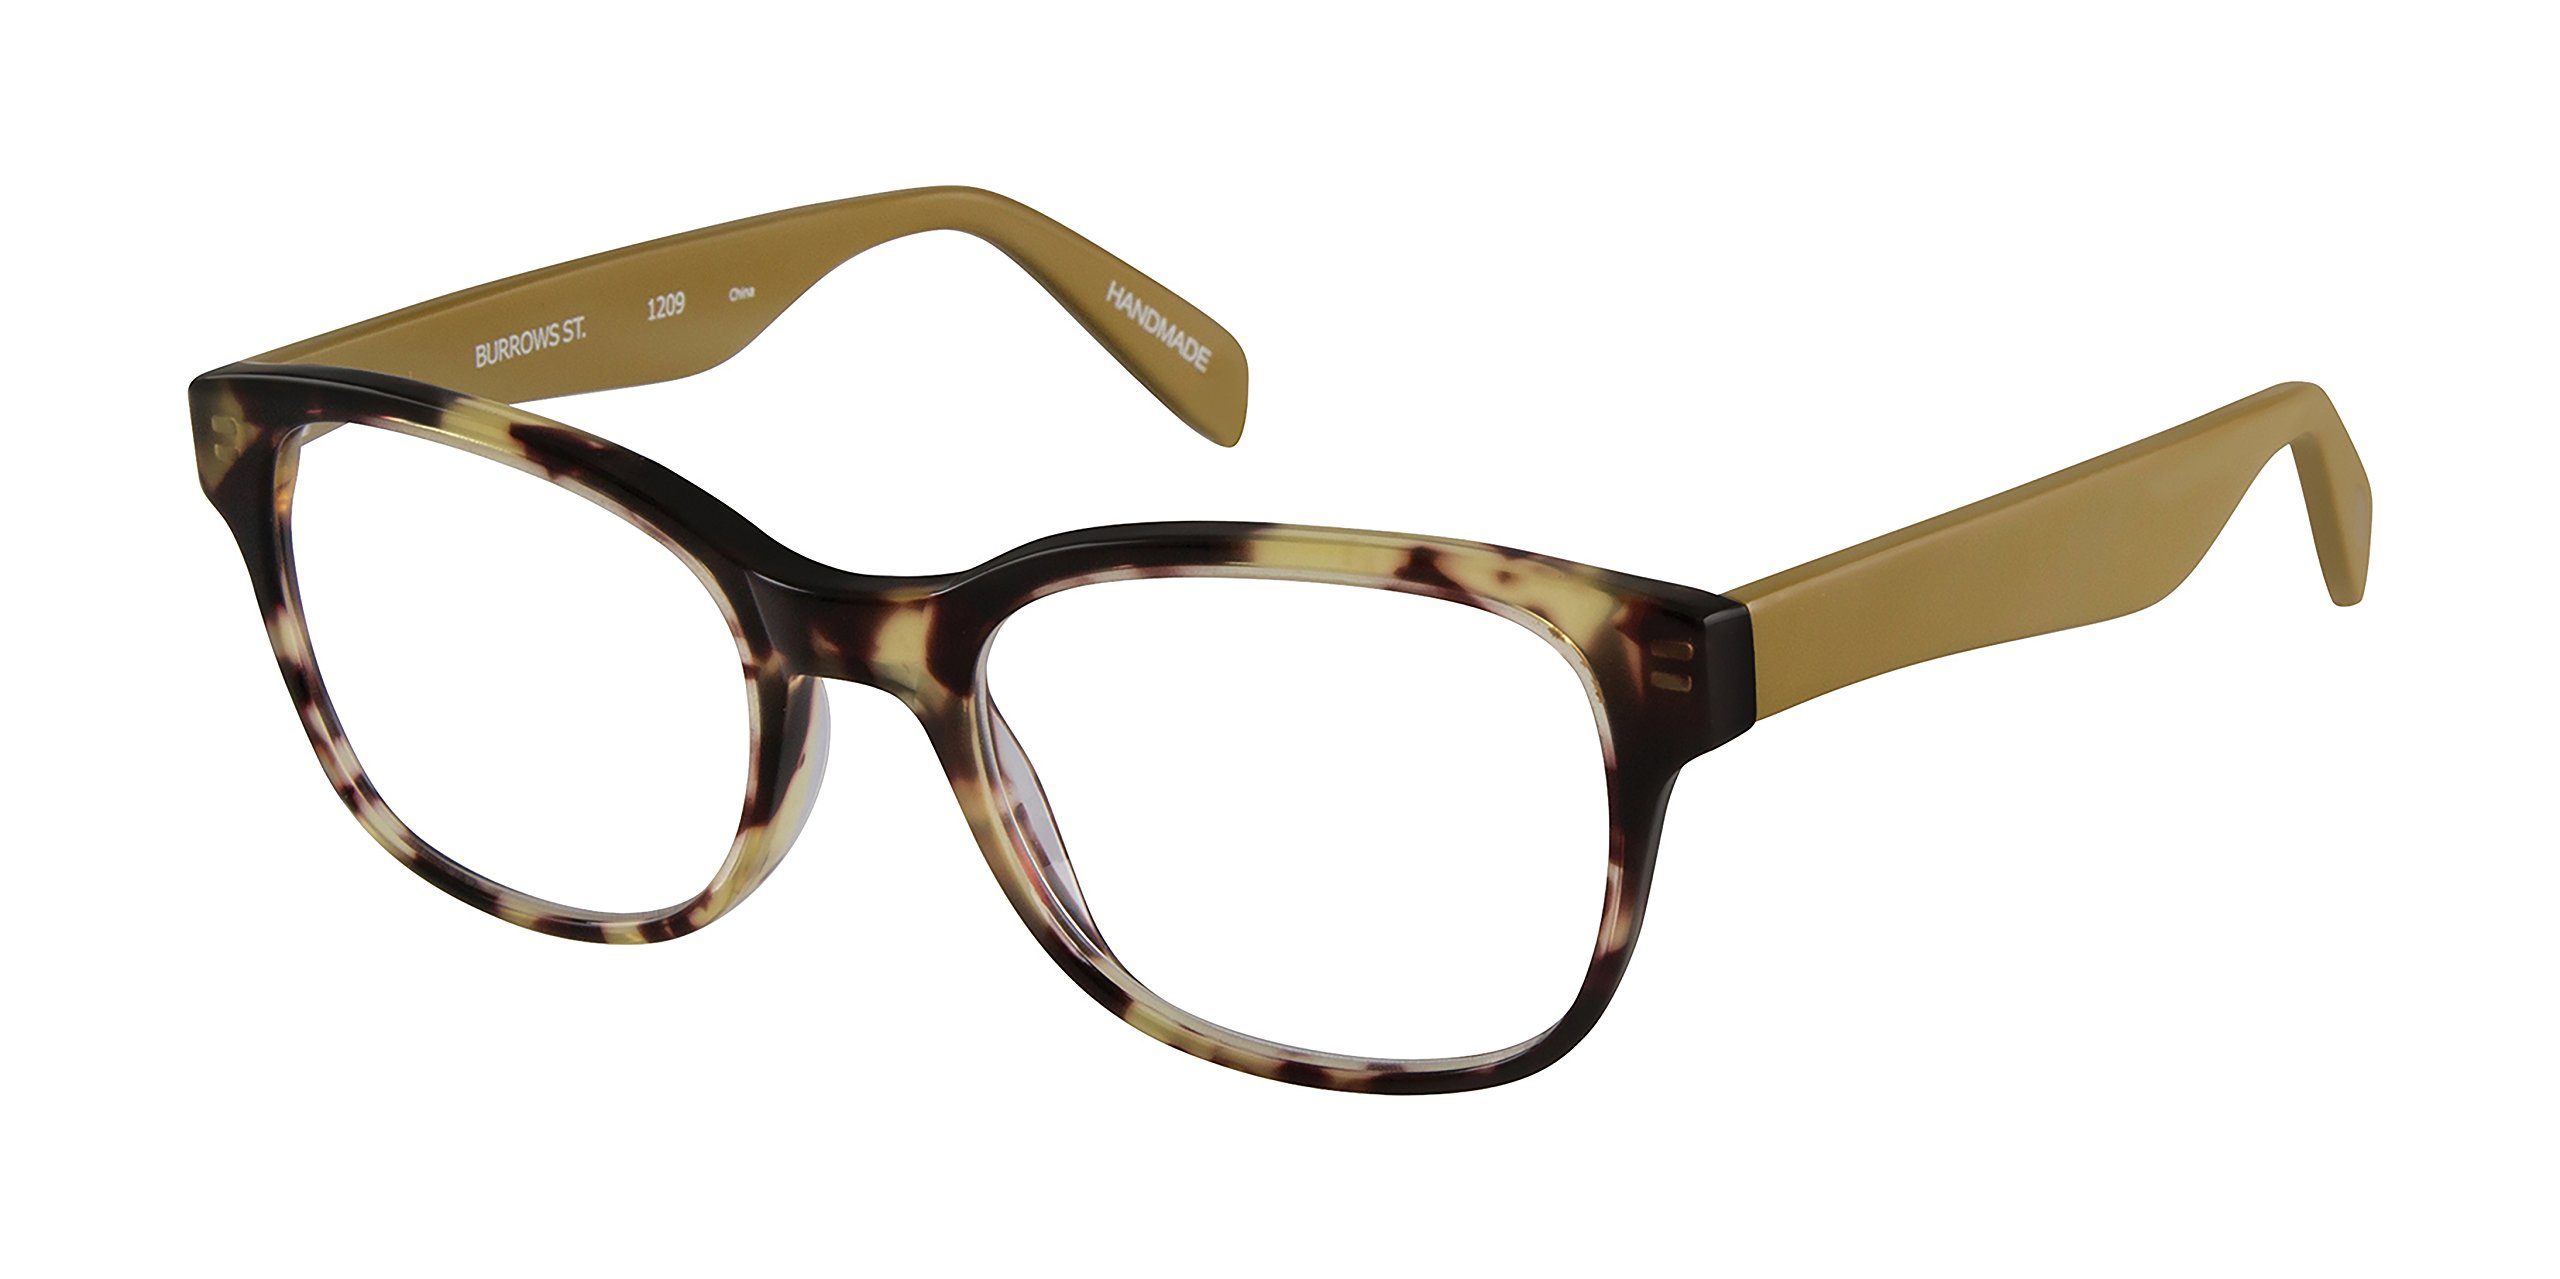 Burrows Street - Square Trendy Fashion Reading Glasses for Men and Women - Tortoise/Goldenrod Tan (+2.50 Magnification Power)